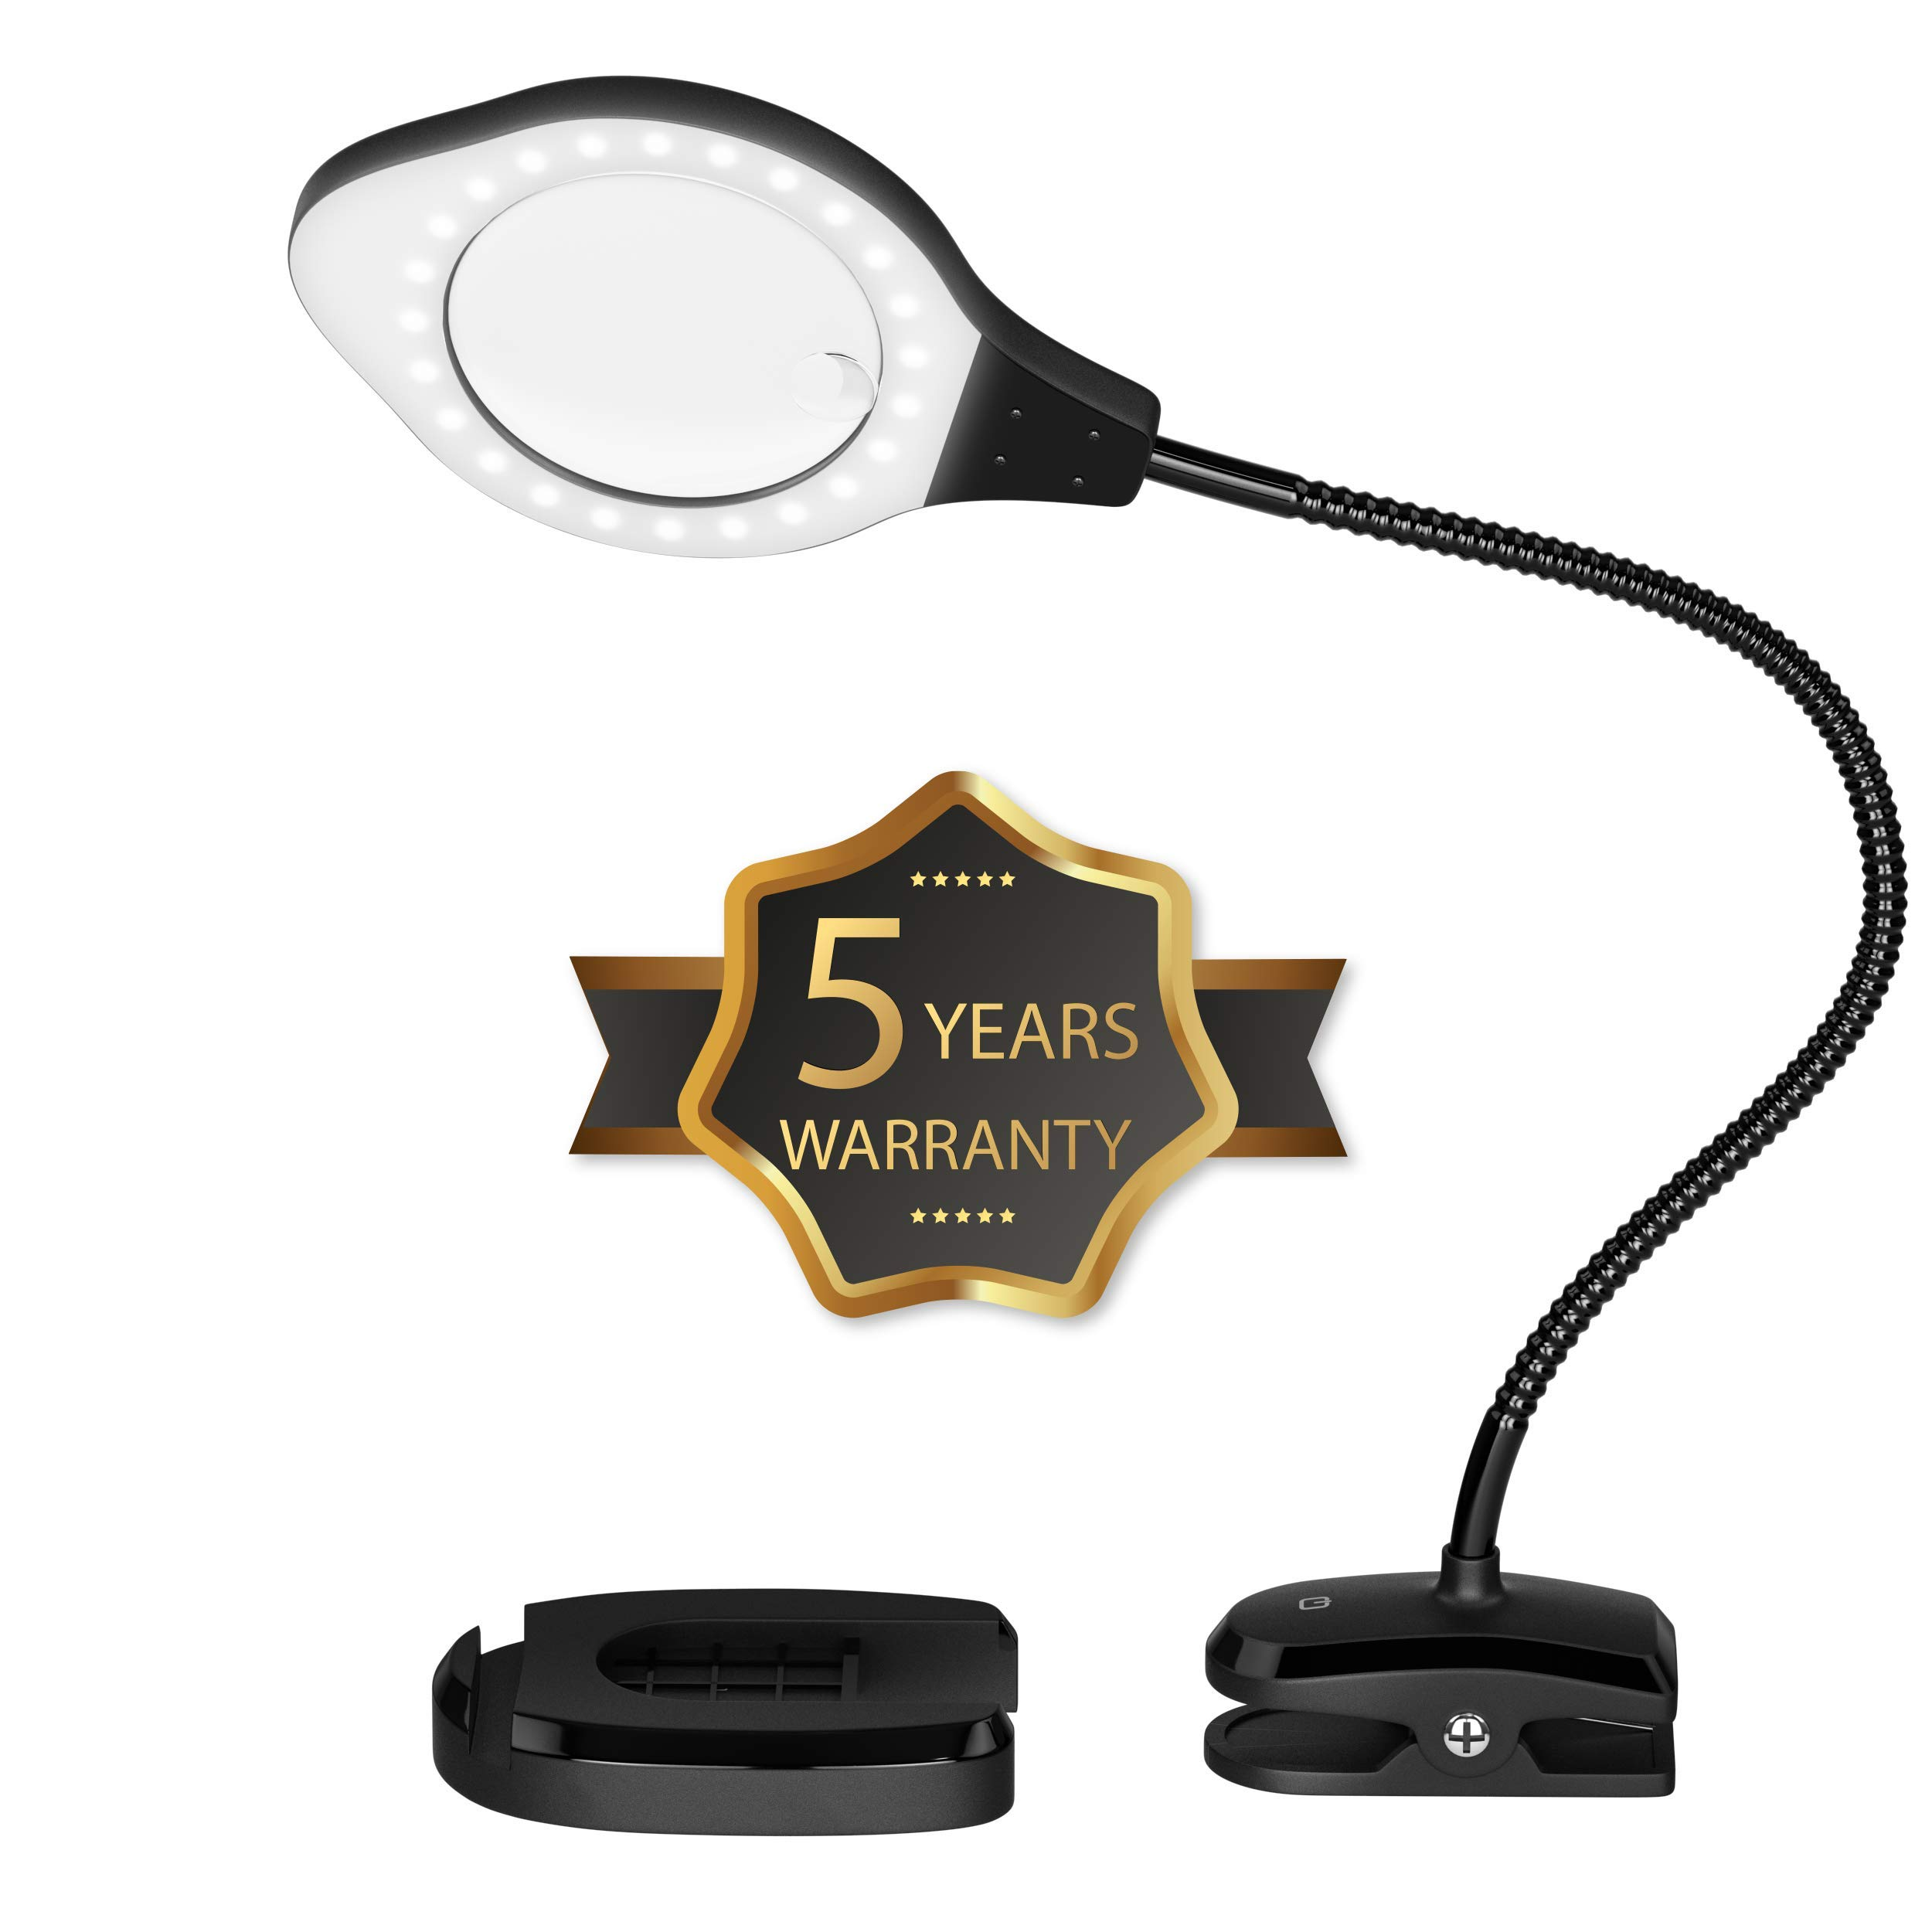 2-4X Magnifying Lamp with LED Light, 5 Year Warranty 3 Brightness Settings, Adjustable Goose Neck, Weighted Bottom for Stability. Perfect for Reading, Crafts,Work by FitPlus